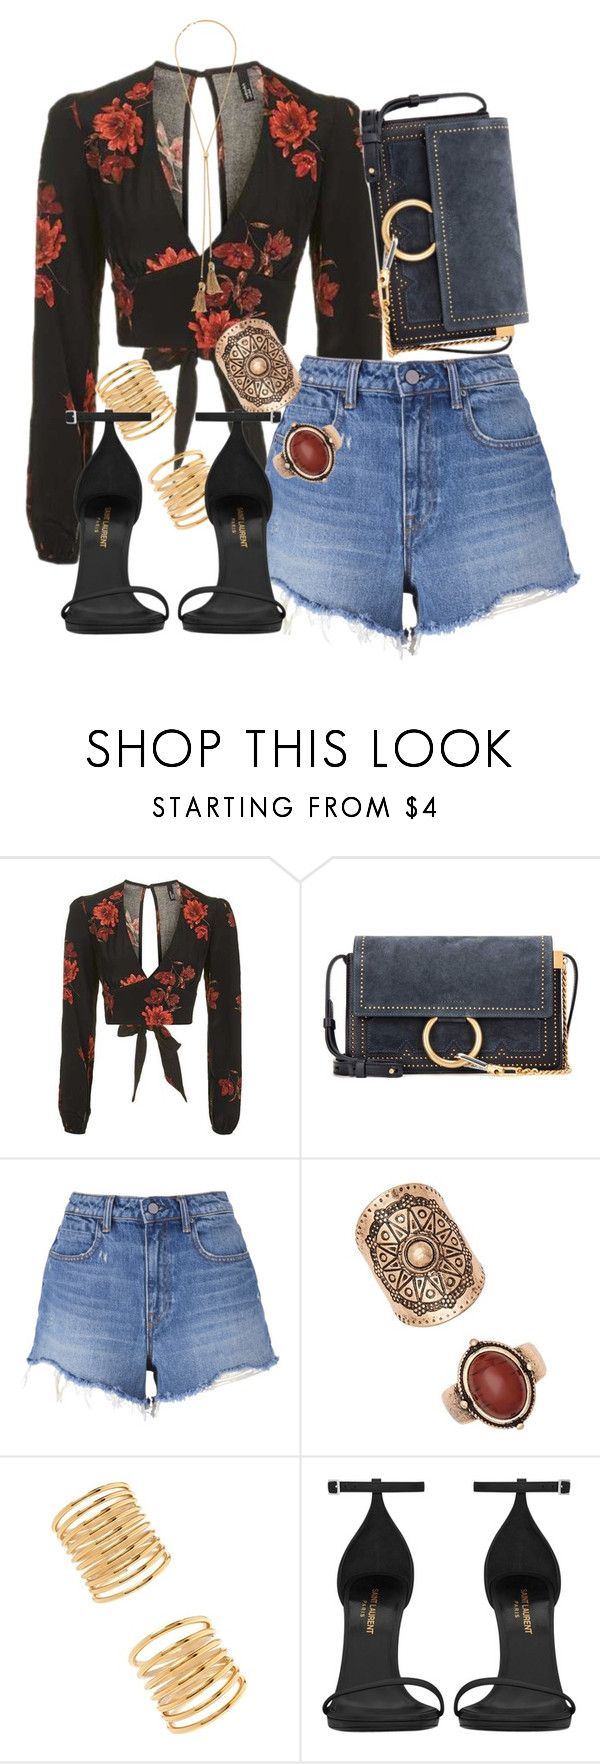 """""""Chloe x Topshop"""" by muddychip-797 ❤ liked on Polyvore featuring Topshop, Chloé, T By Alexander Wang, Forever 21, Yves Saint Laurent, NightOut, vacation, chloe and fashionset"""